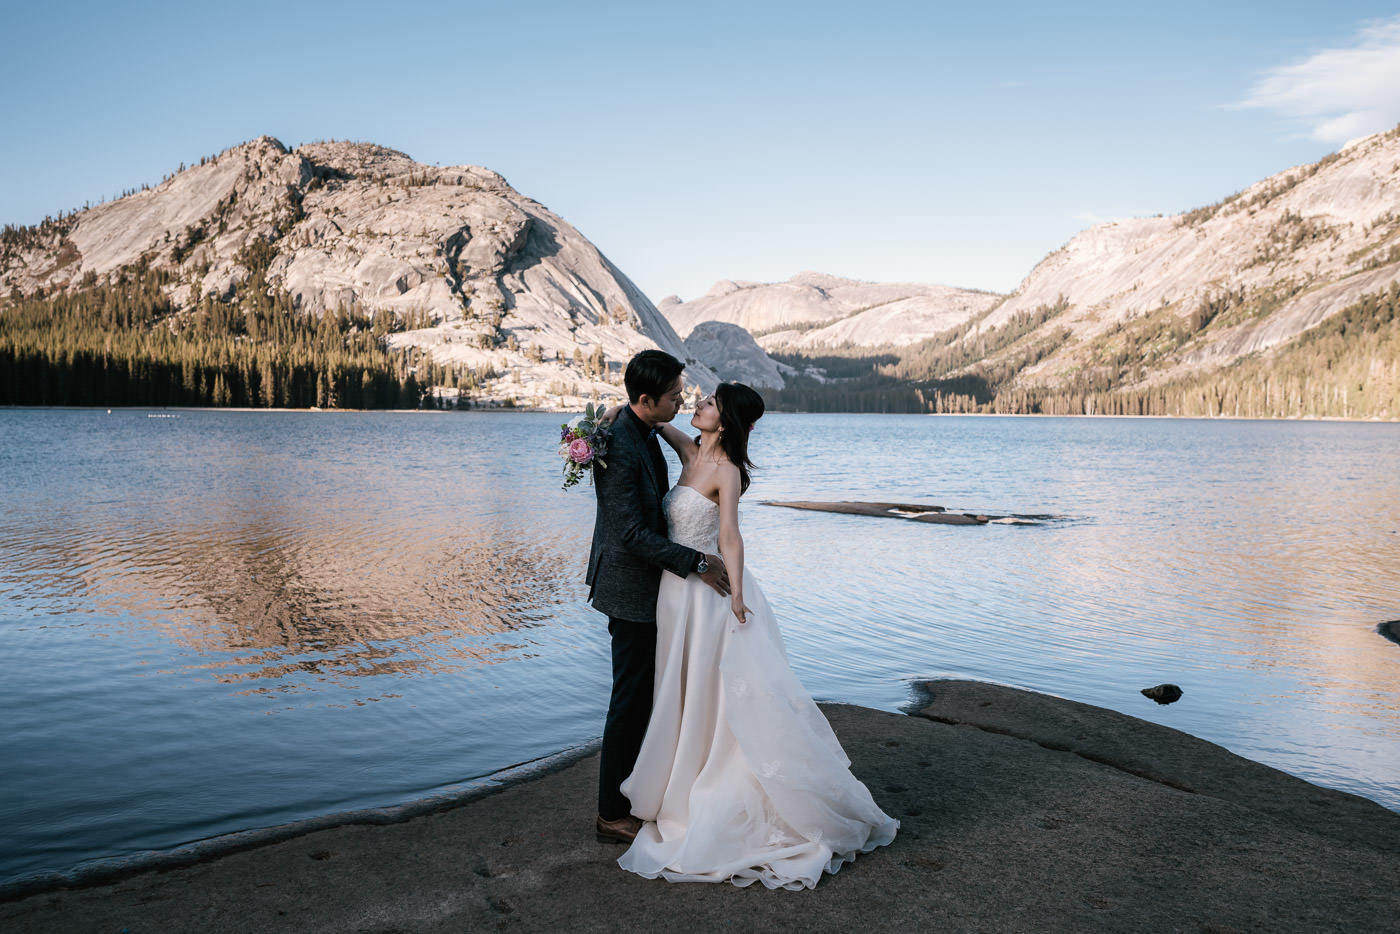 tenaya-lake-elopement-yosemite-7.jpg